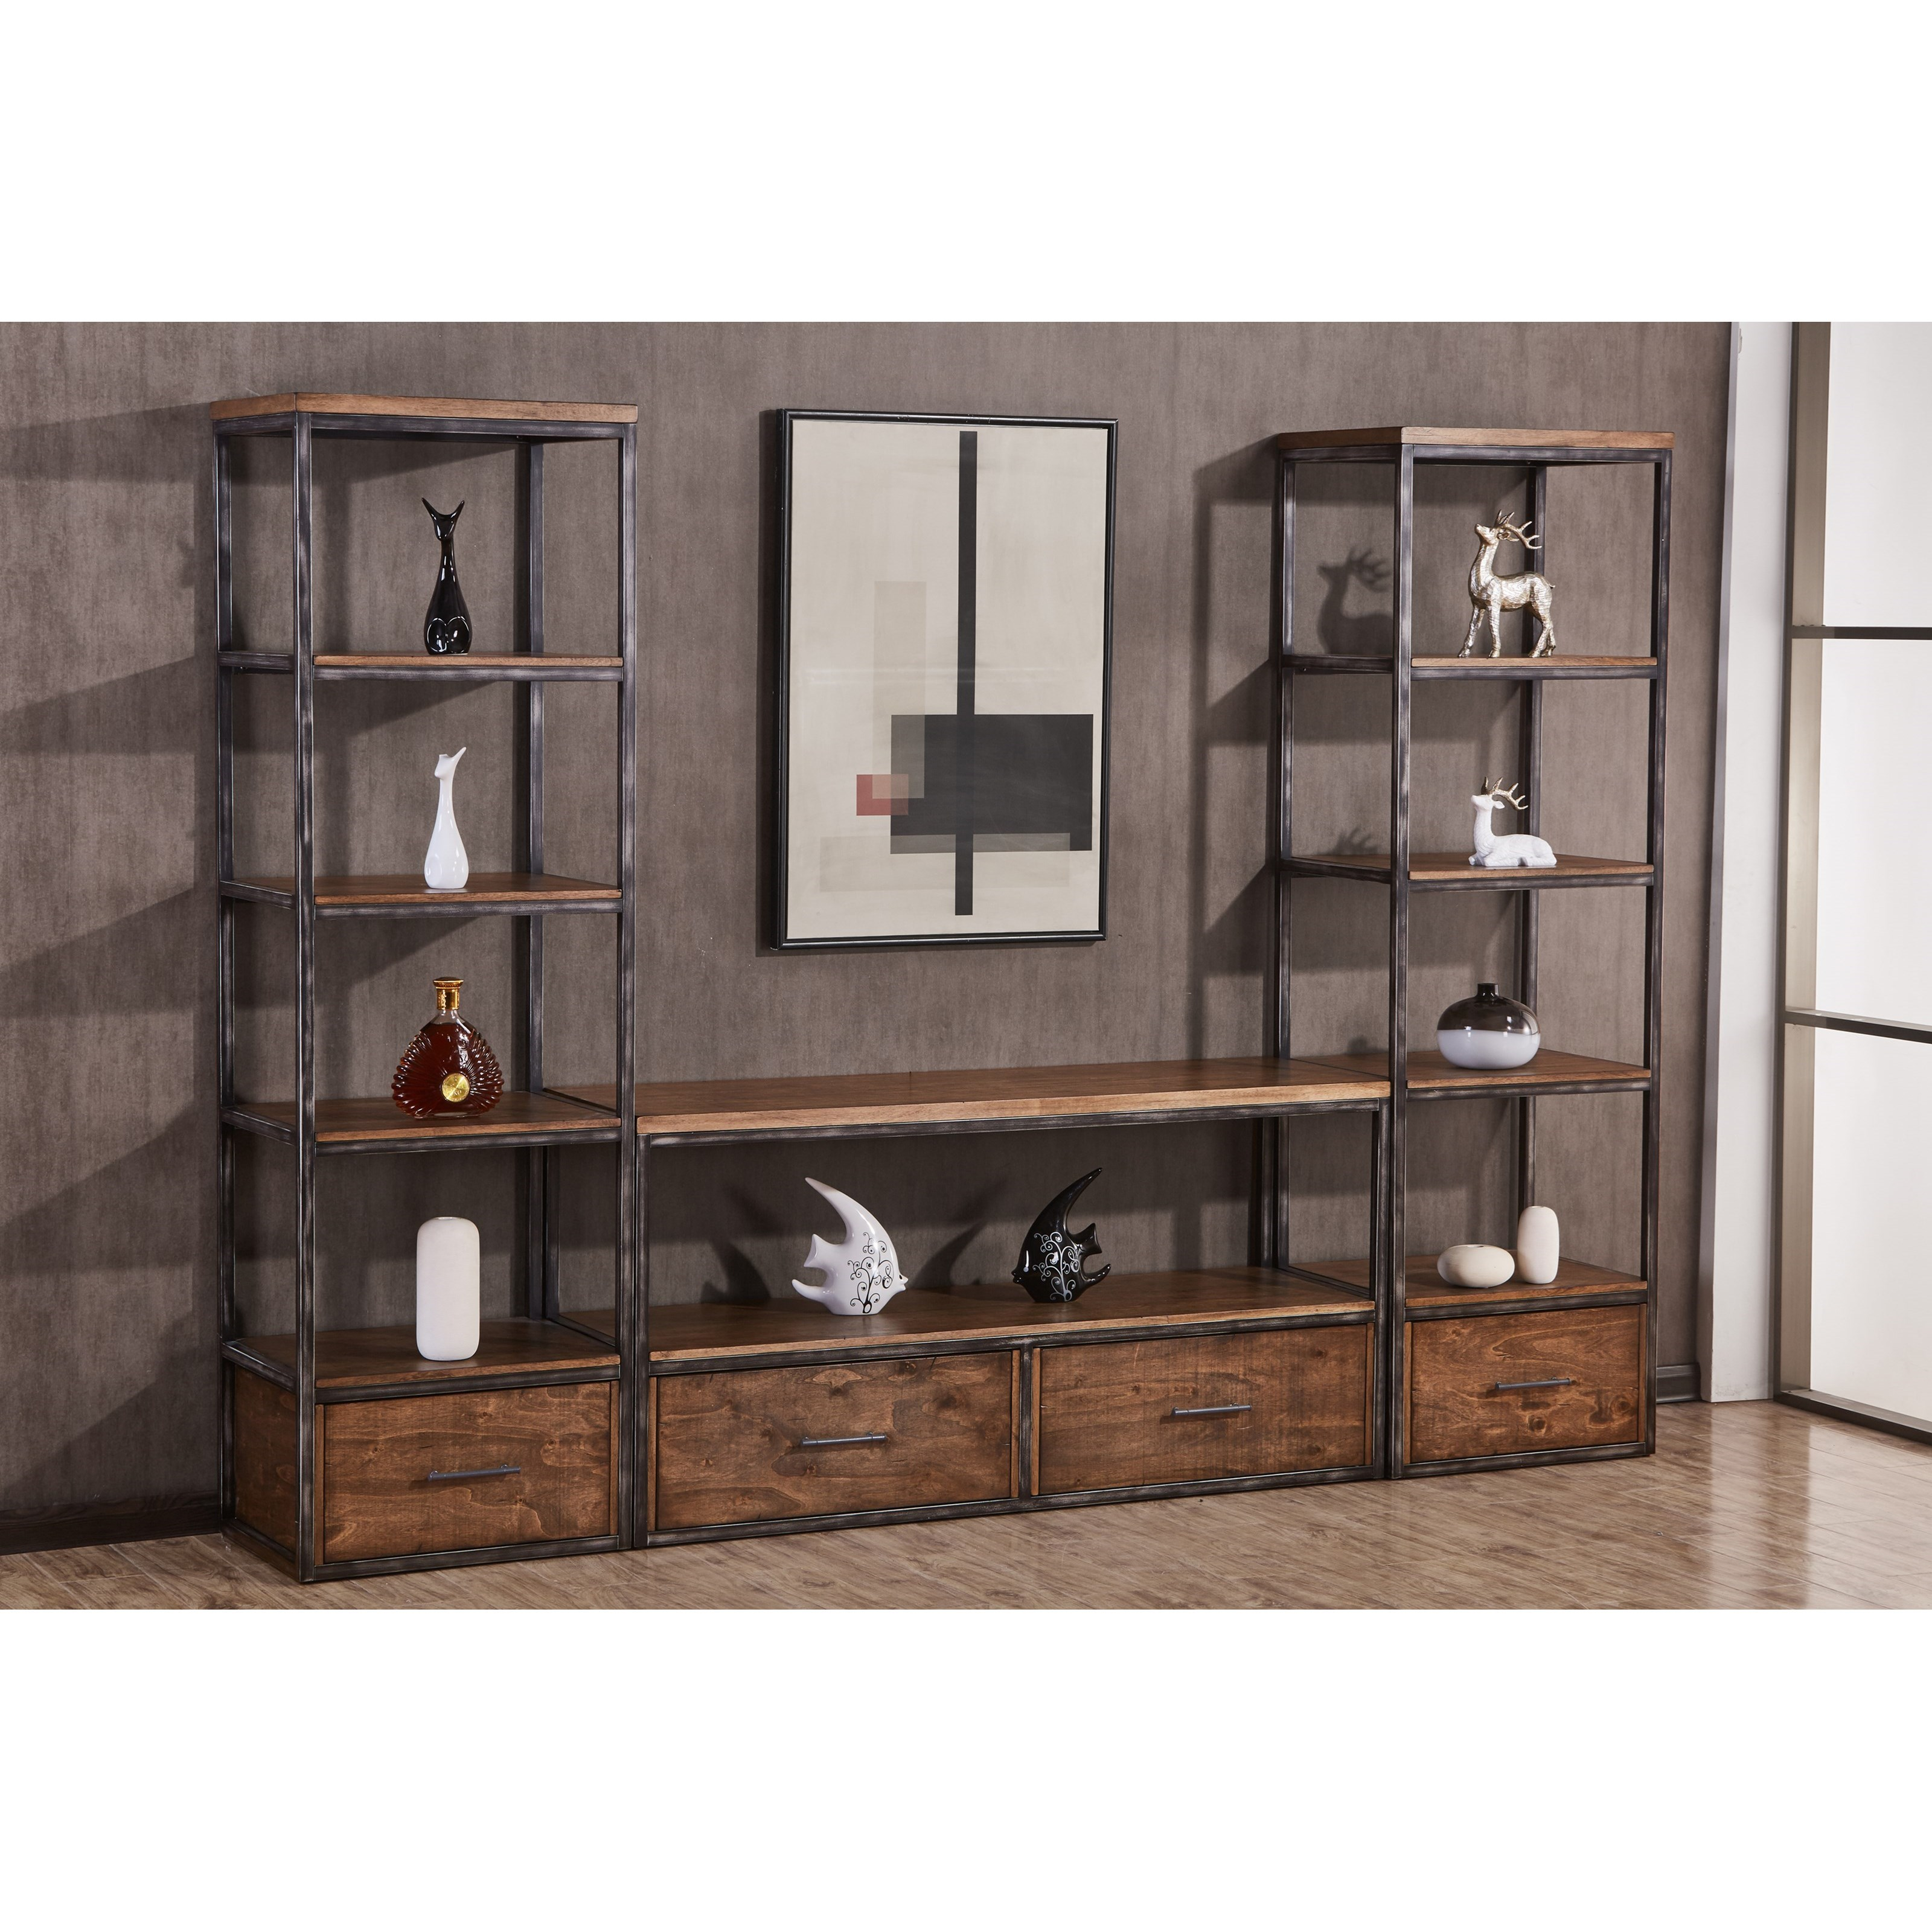 7326 Wall Unit by United Furniture Industries at Household Furniture